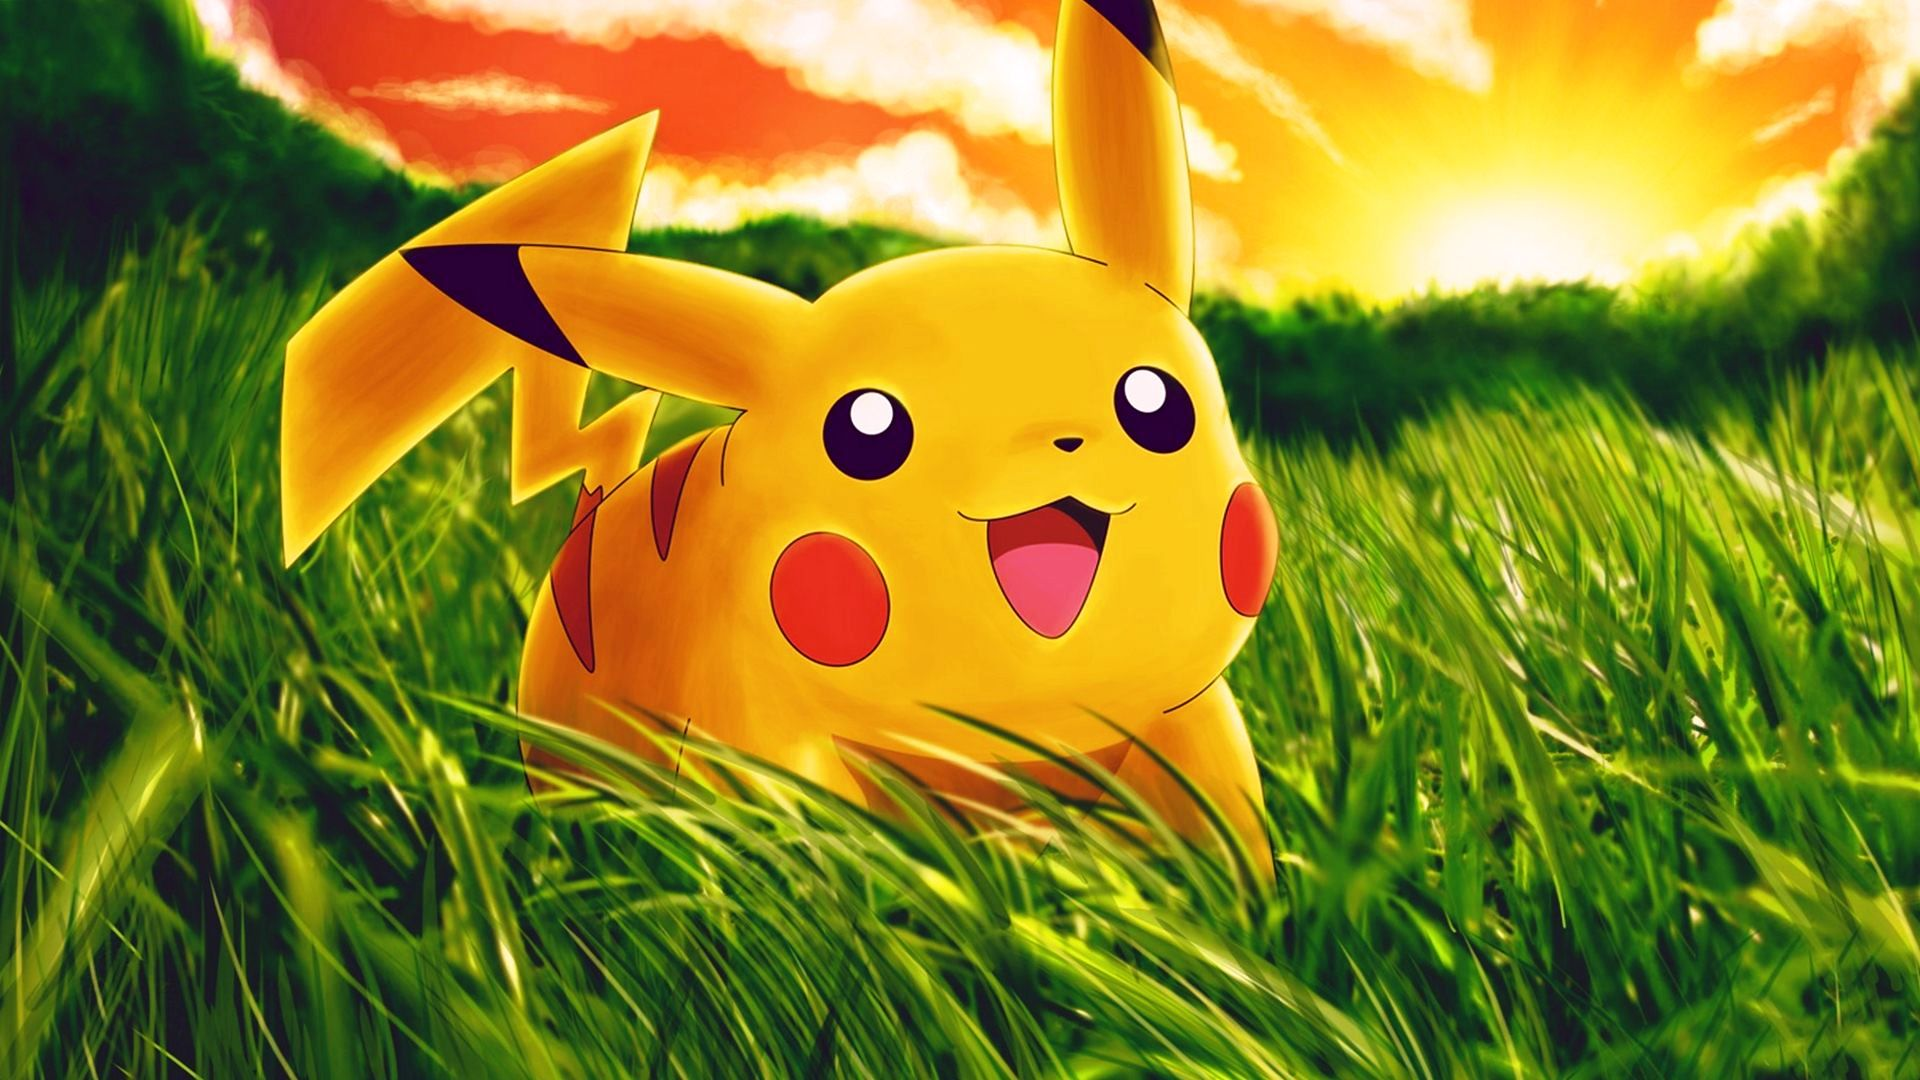 Cute 3d Cartoon Wallpapers Pokemon Wallpaper